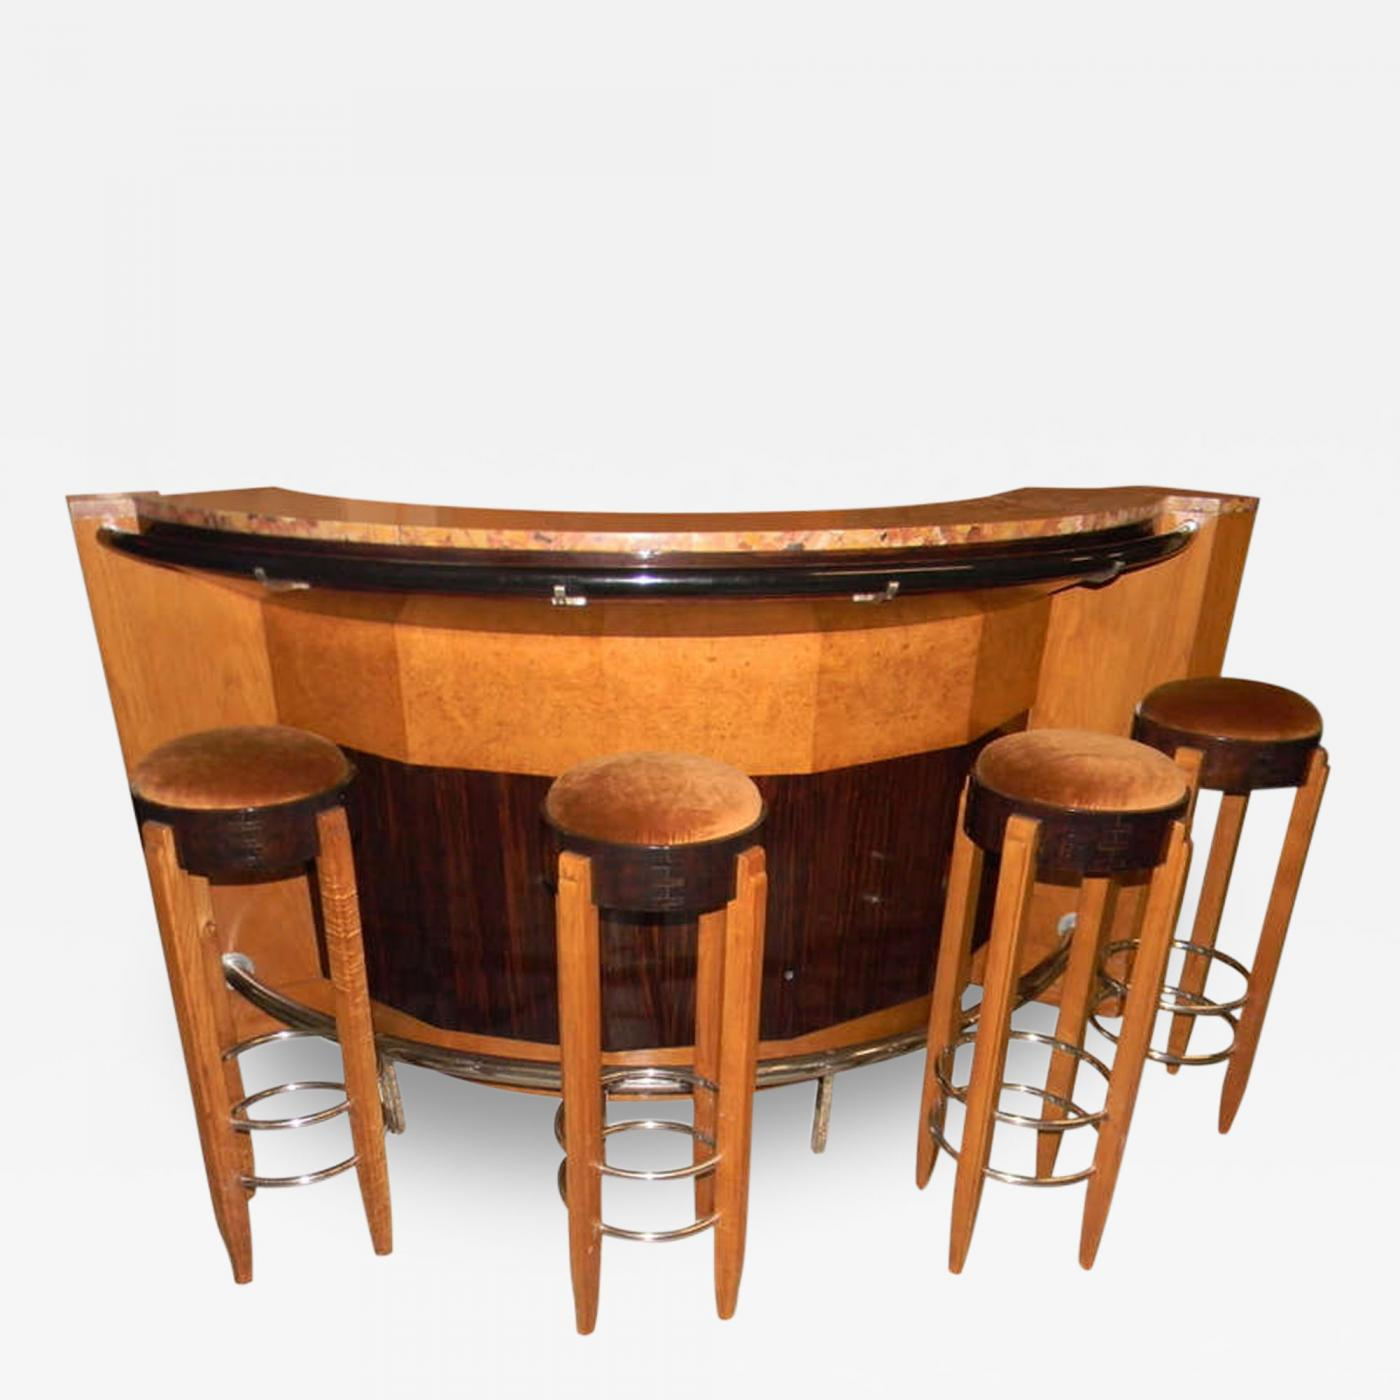 French Art Deco Stand behind Bar with Stools